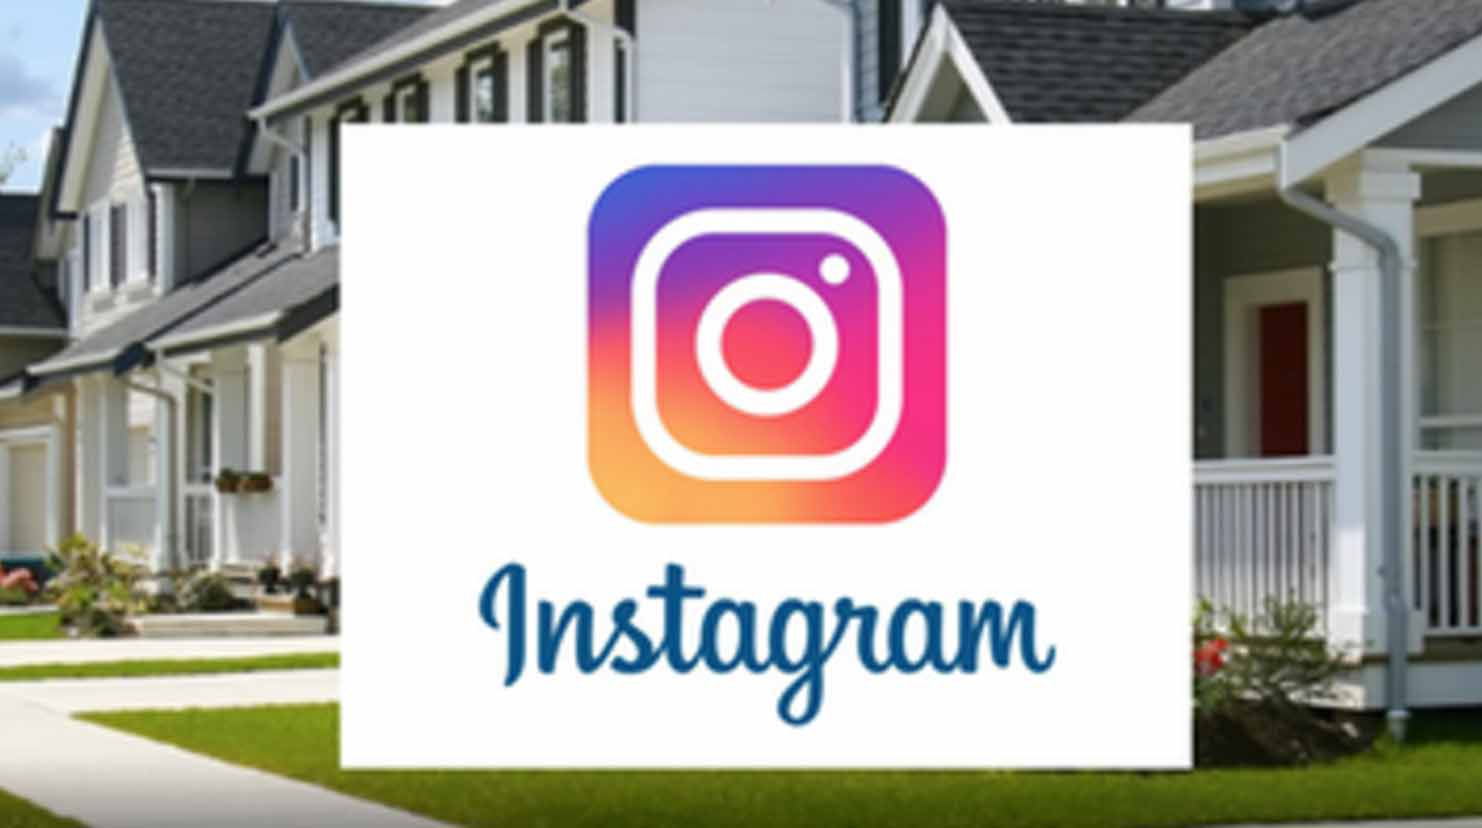 how to get real estate leads with Instagram